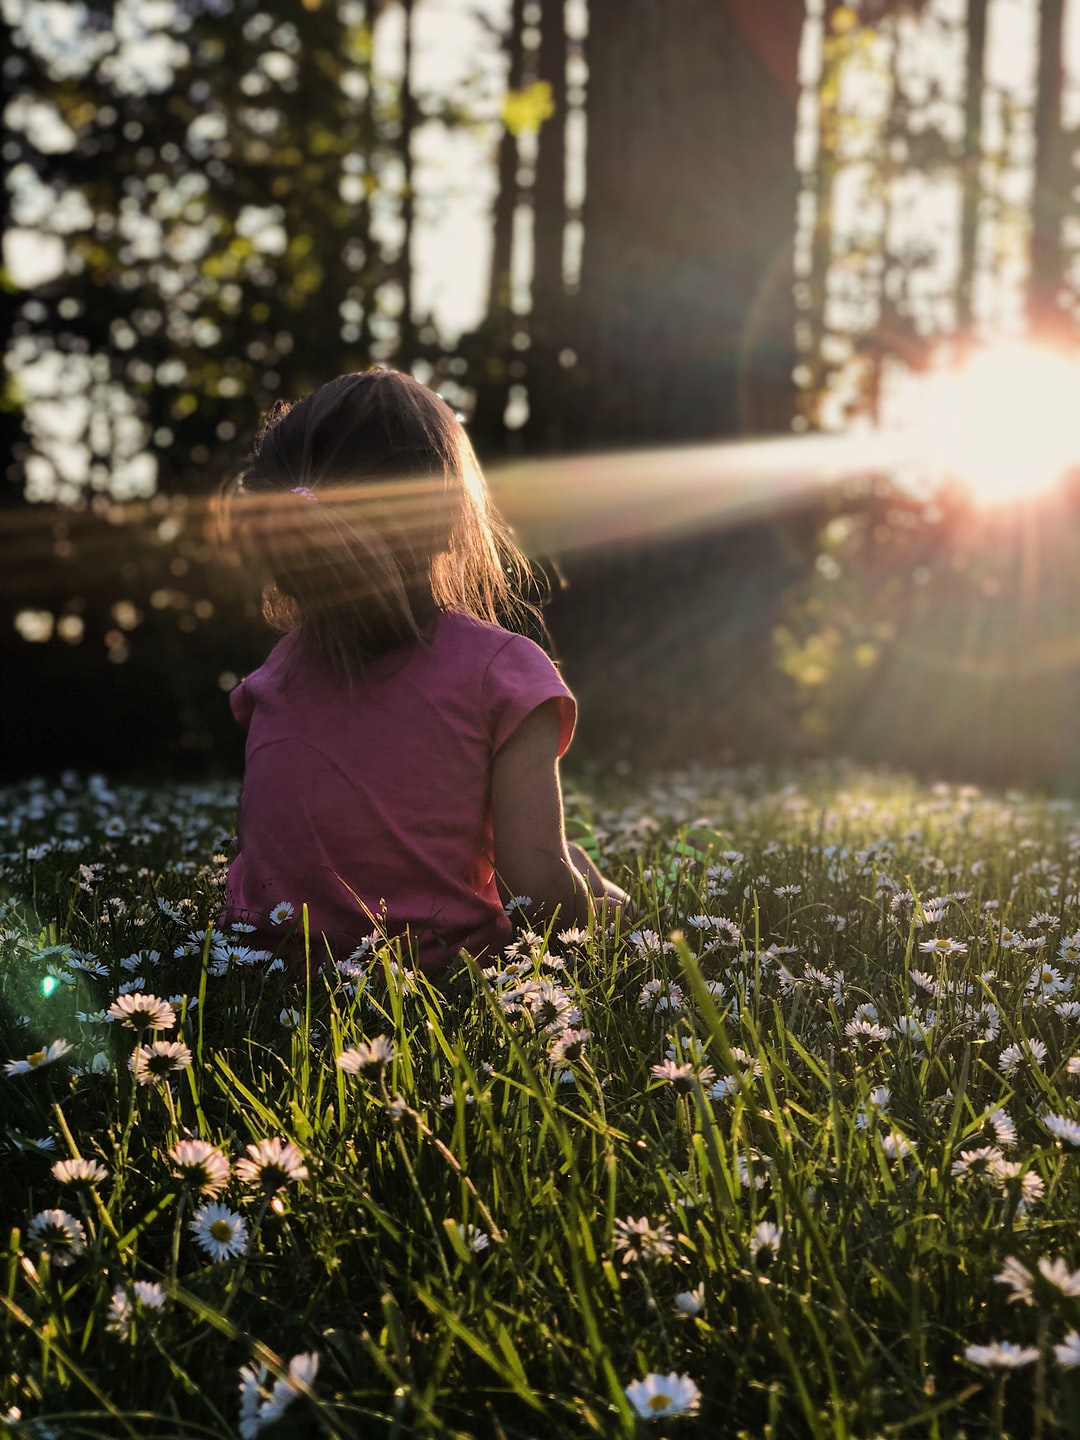 My family was enjoying some time on a hike in a wooded area.  The way the light was coming through the trees and across the grass and daisies was making me itch to capture the moment.   I got down on my stomach in the grass to capture this photo of my daughter Ellie. All I had with me that day was my iPhone X which was still a champ for captuing the moment perfectly. I just love the way the end of the day sunlight was making her glow.  To me this photo perfectly captures summer, childhood, and my sweet girl, who shines brighter then the sun.